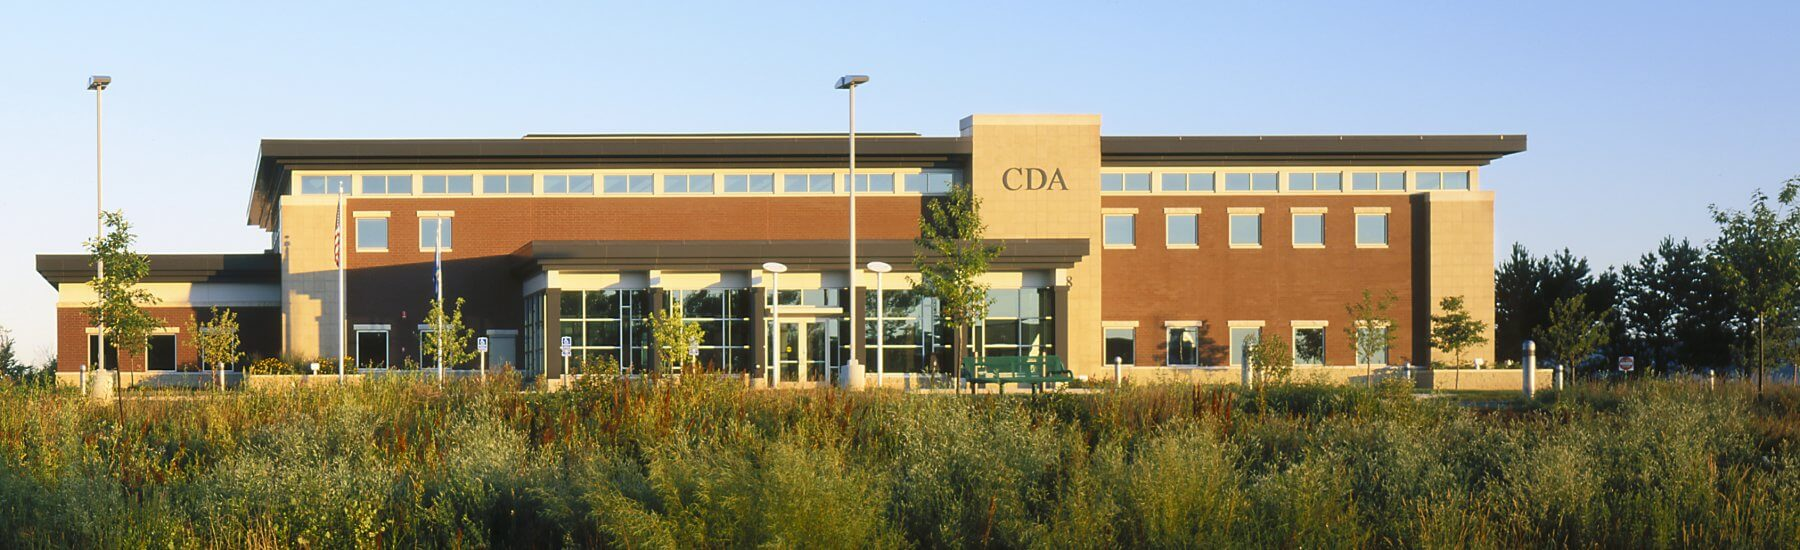 Dakota County CDA Office Building